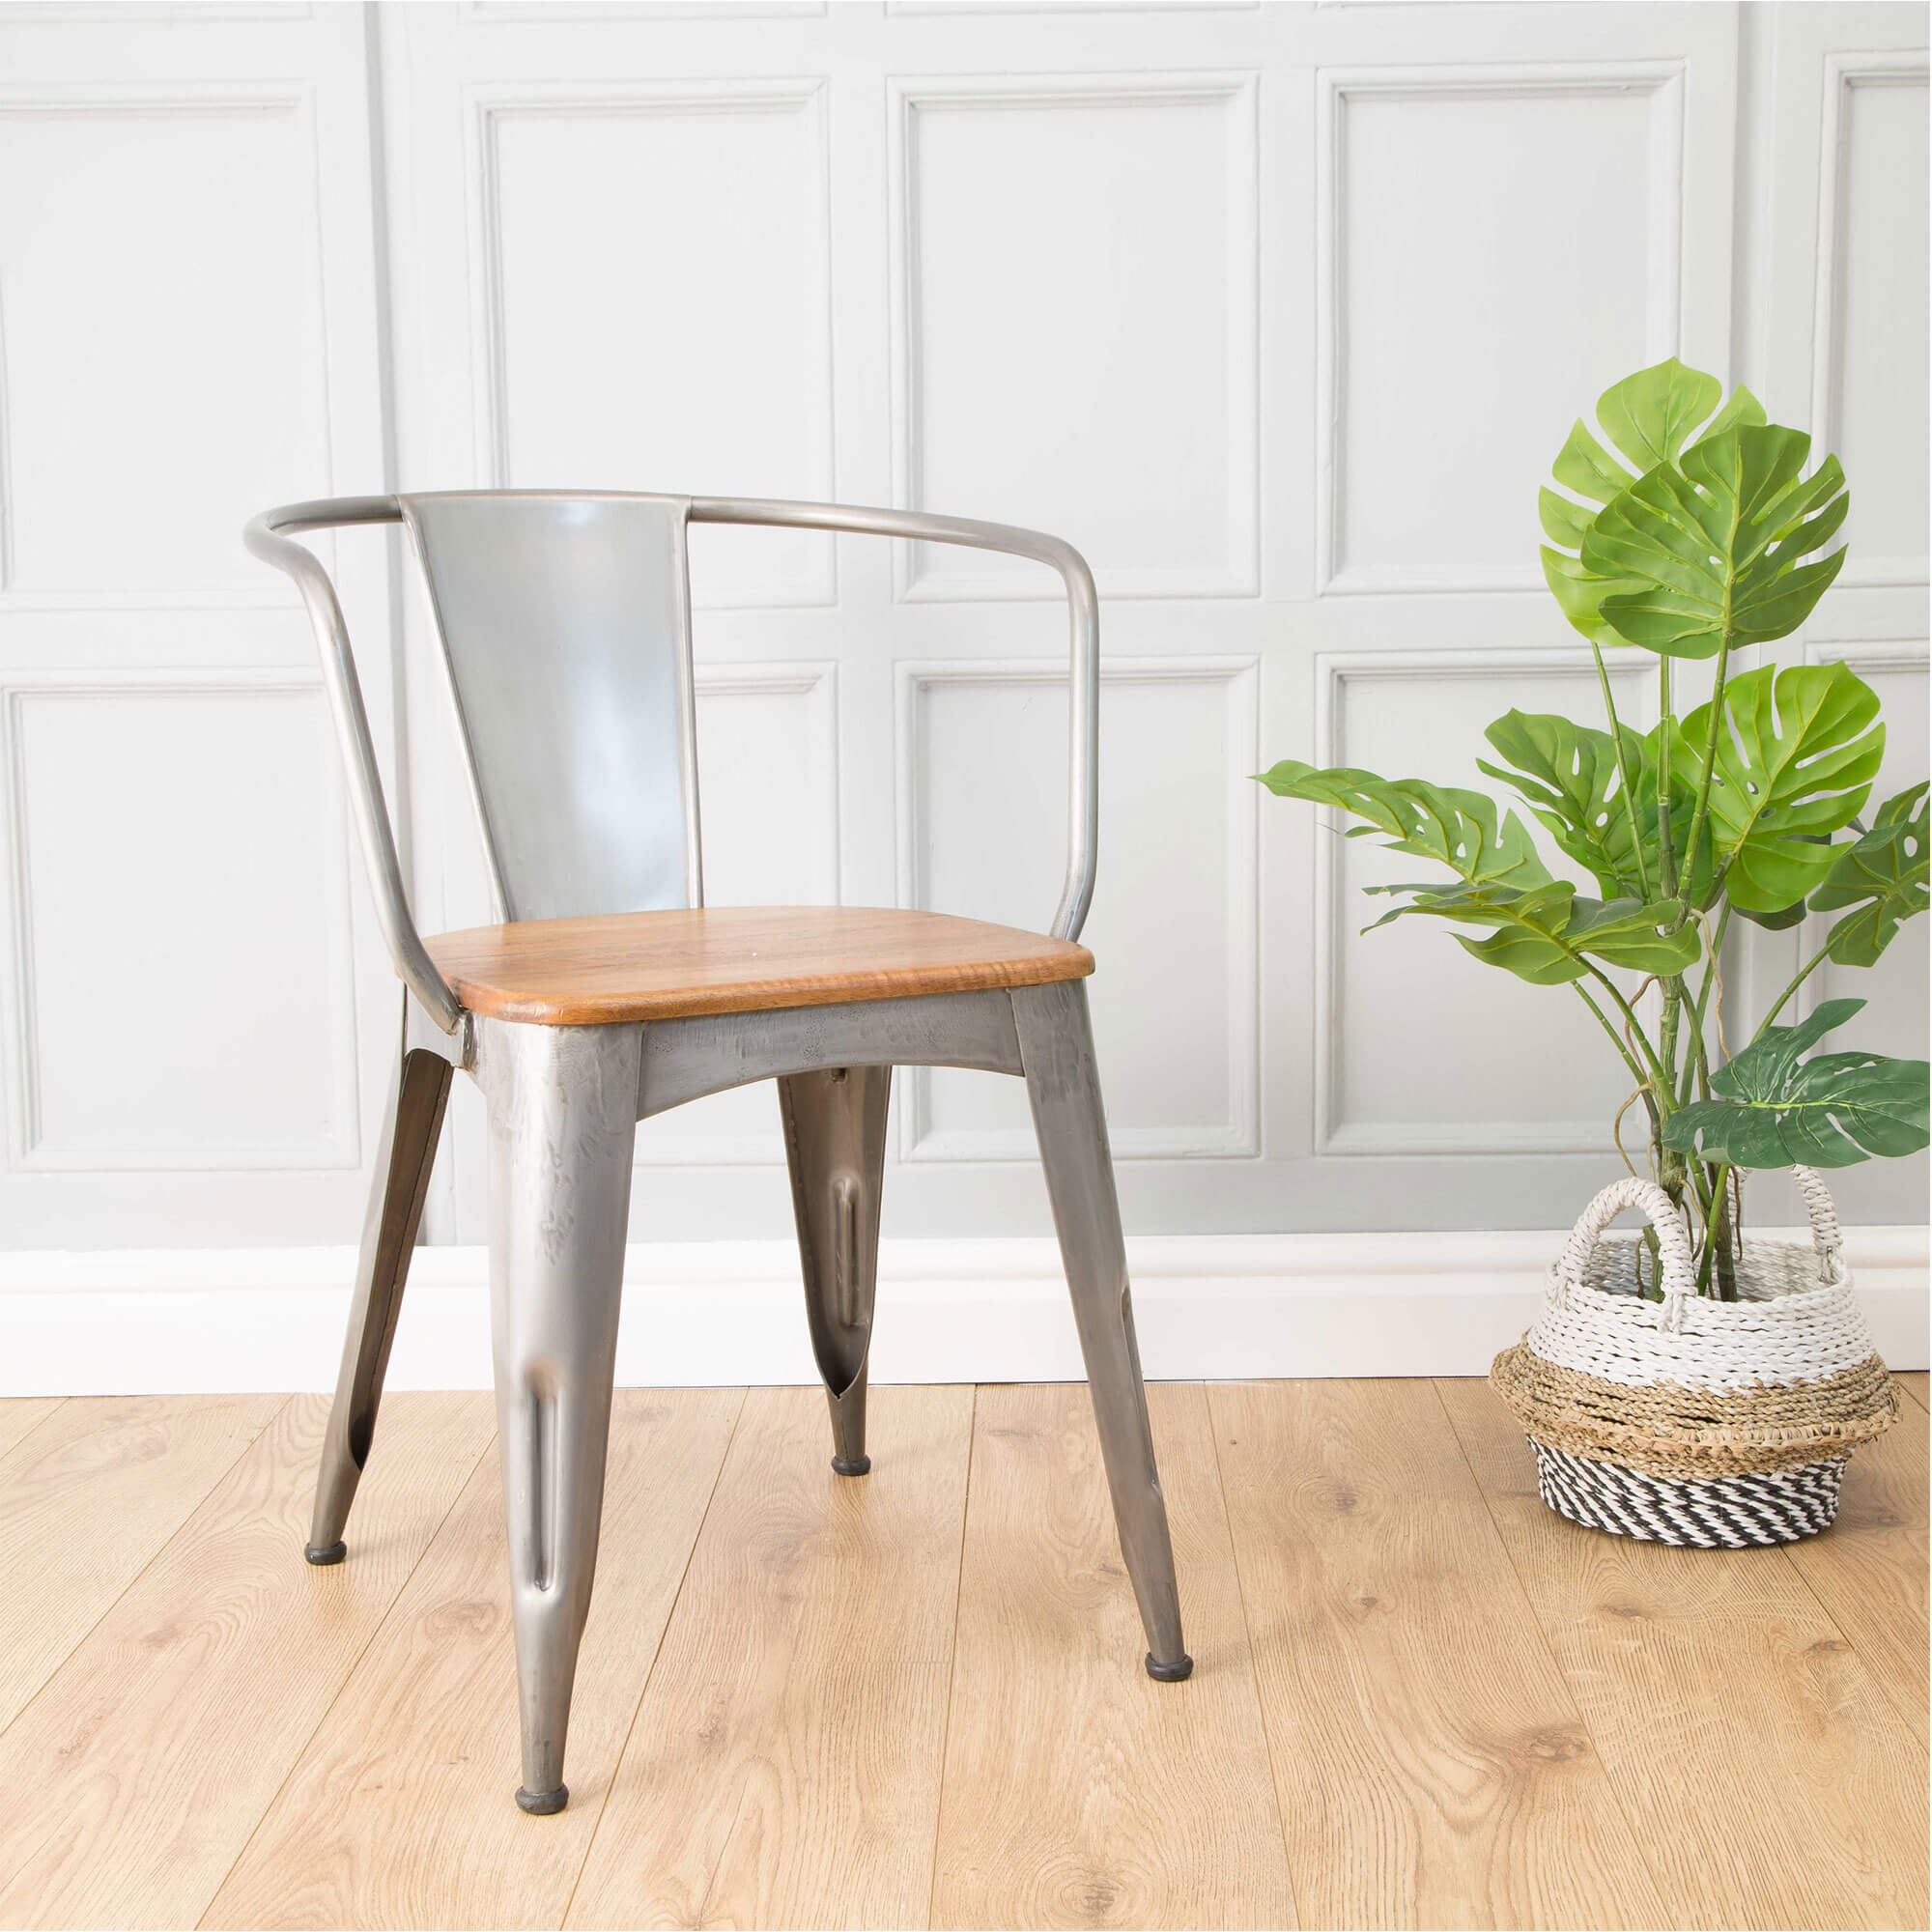 Urban Square Cafe Table x2 Chairs (60x60) | Solid Wood |